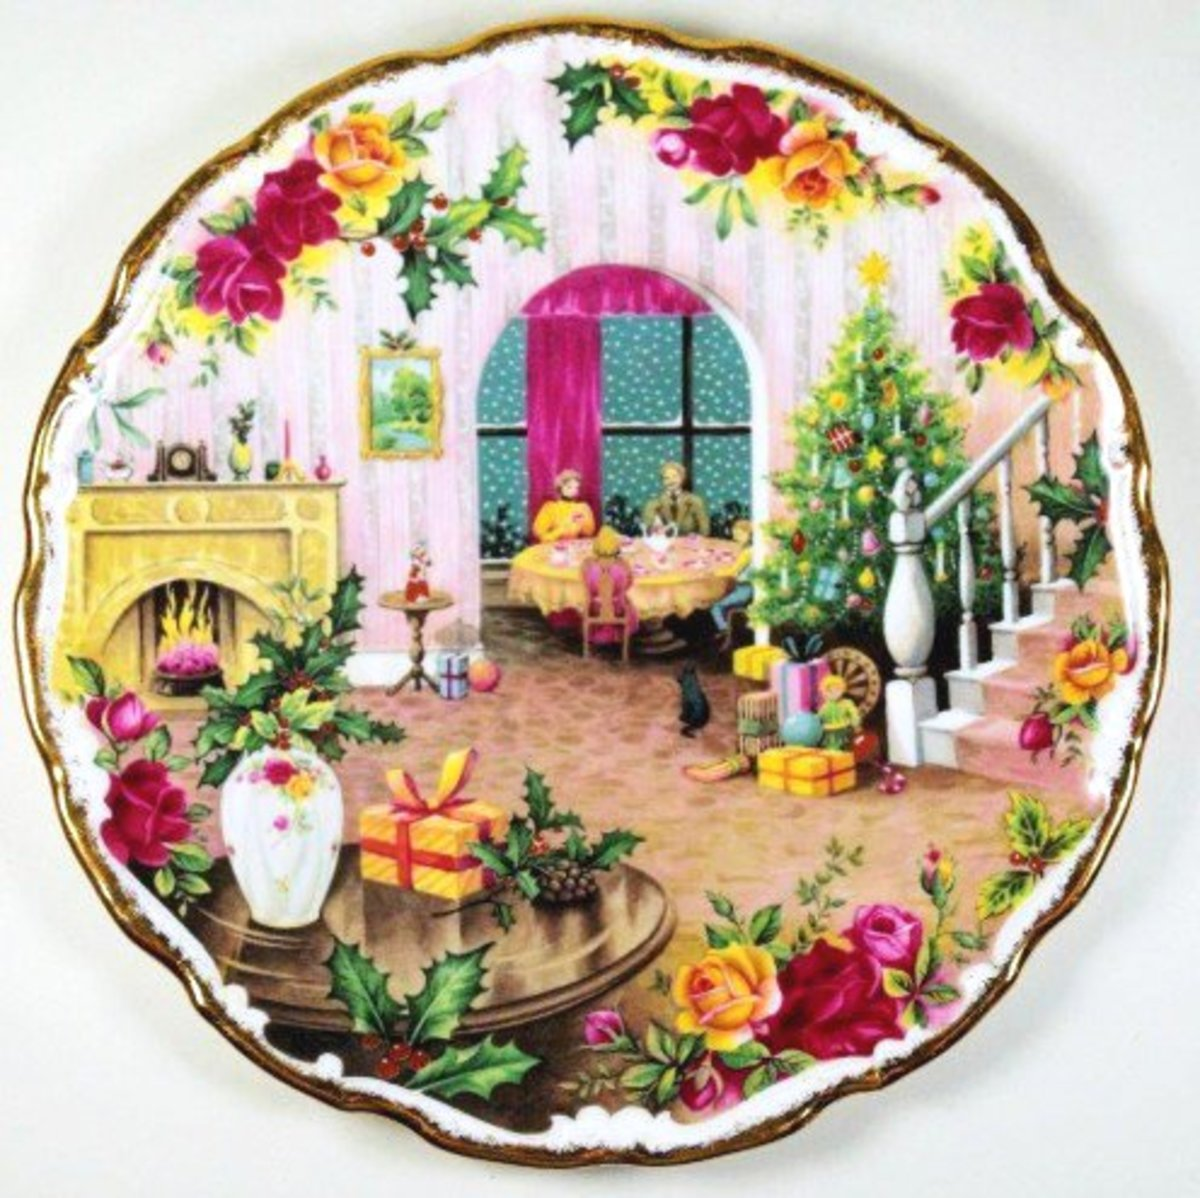 Royal Albert Christmas Collector Plates--Nostalgic Scenes Depicting the Magic of the Season